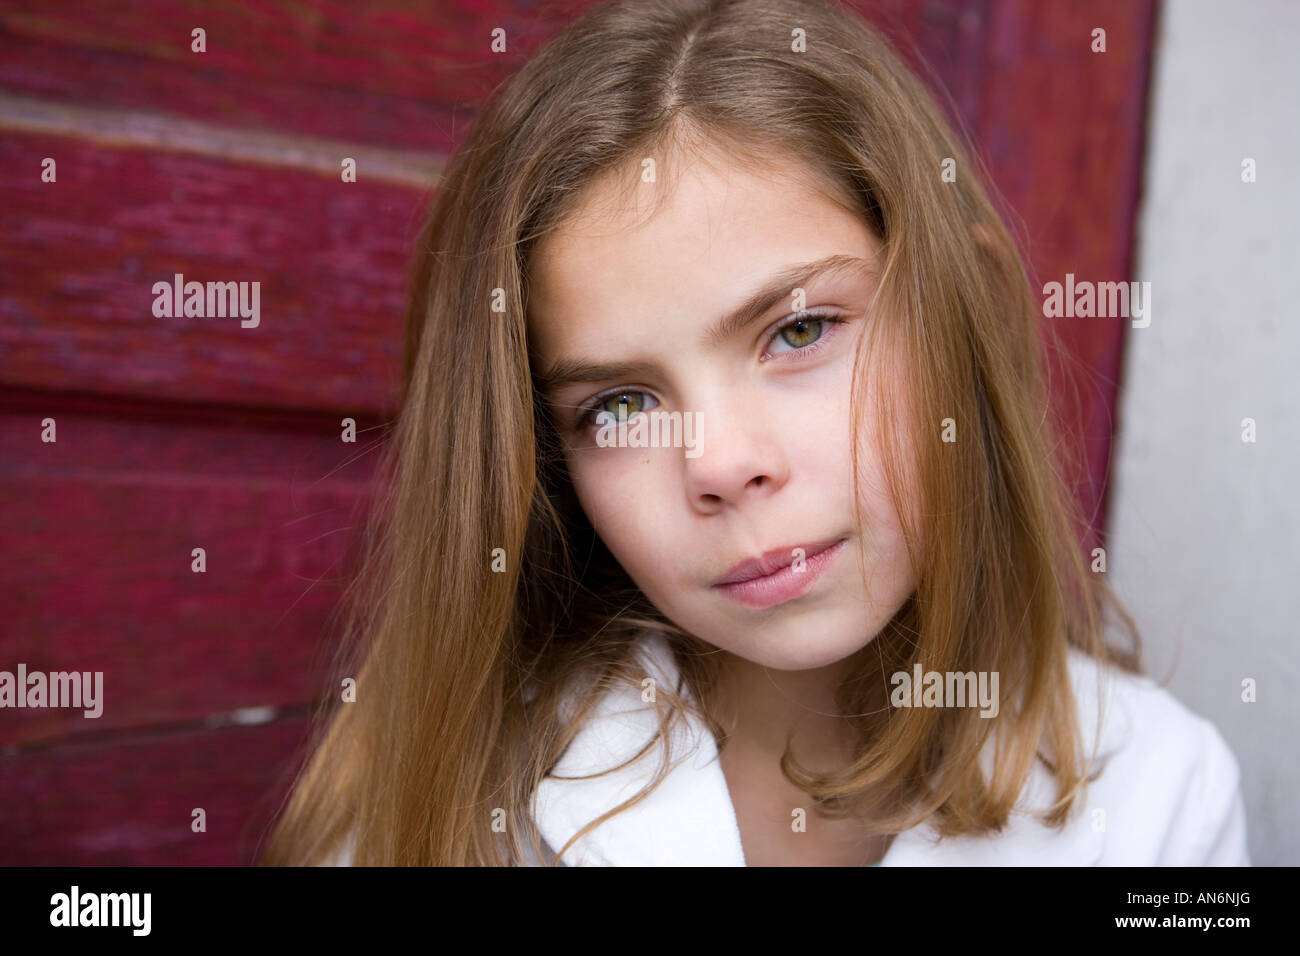 young girl with brown hair and green eyes sitting in front